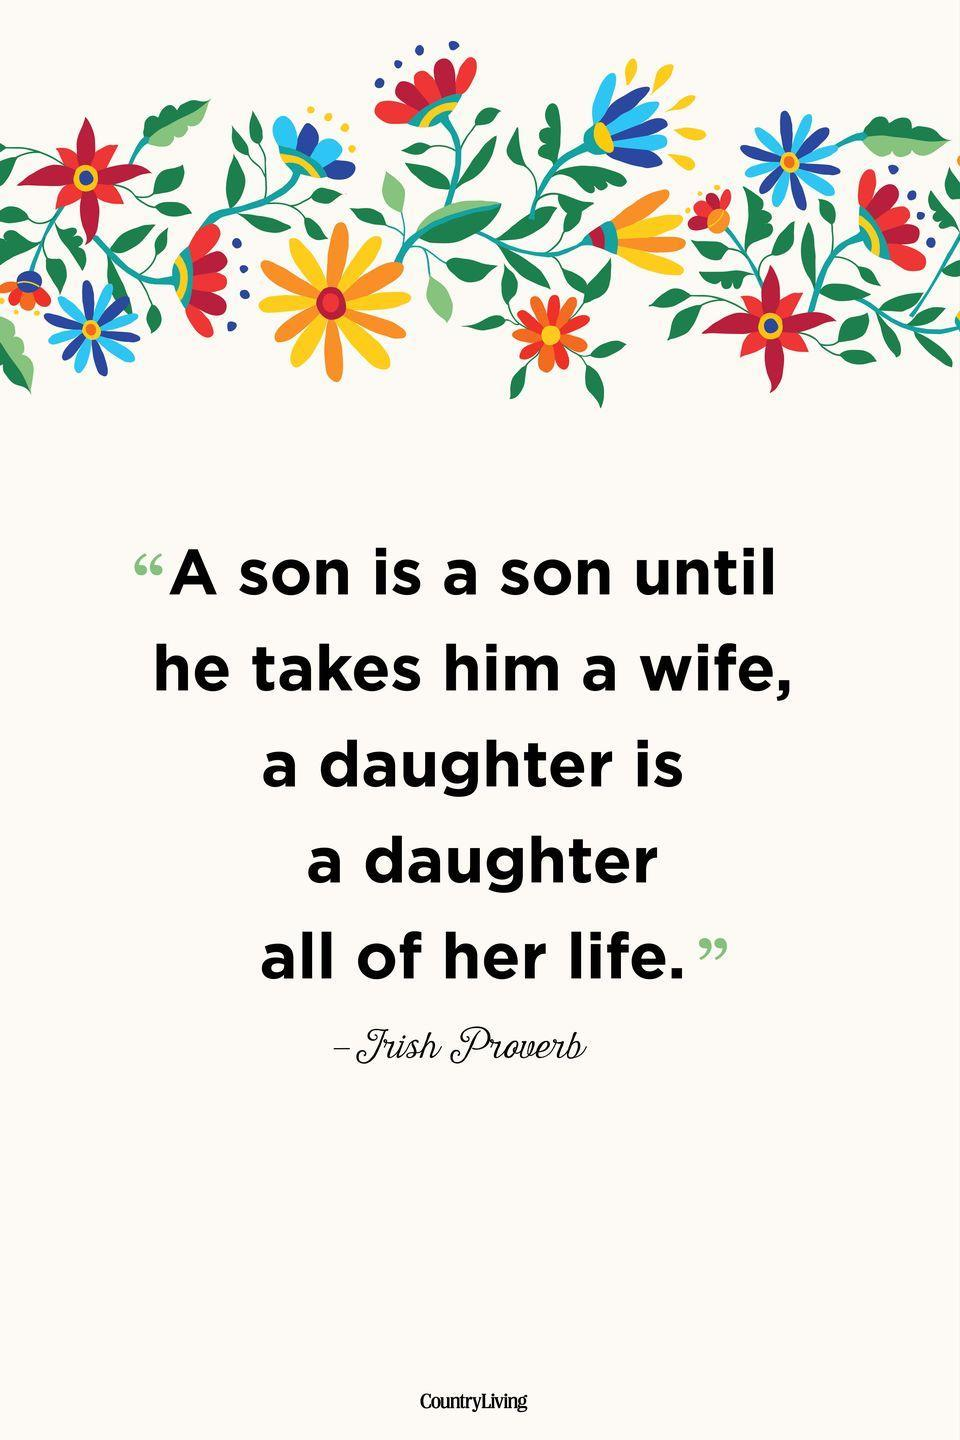 """<p>""""A son is a son until he takes him a wife, a daughter is a daughter all of her life.""""</p>"""